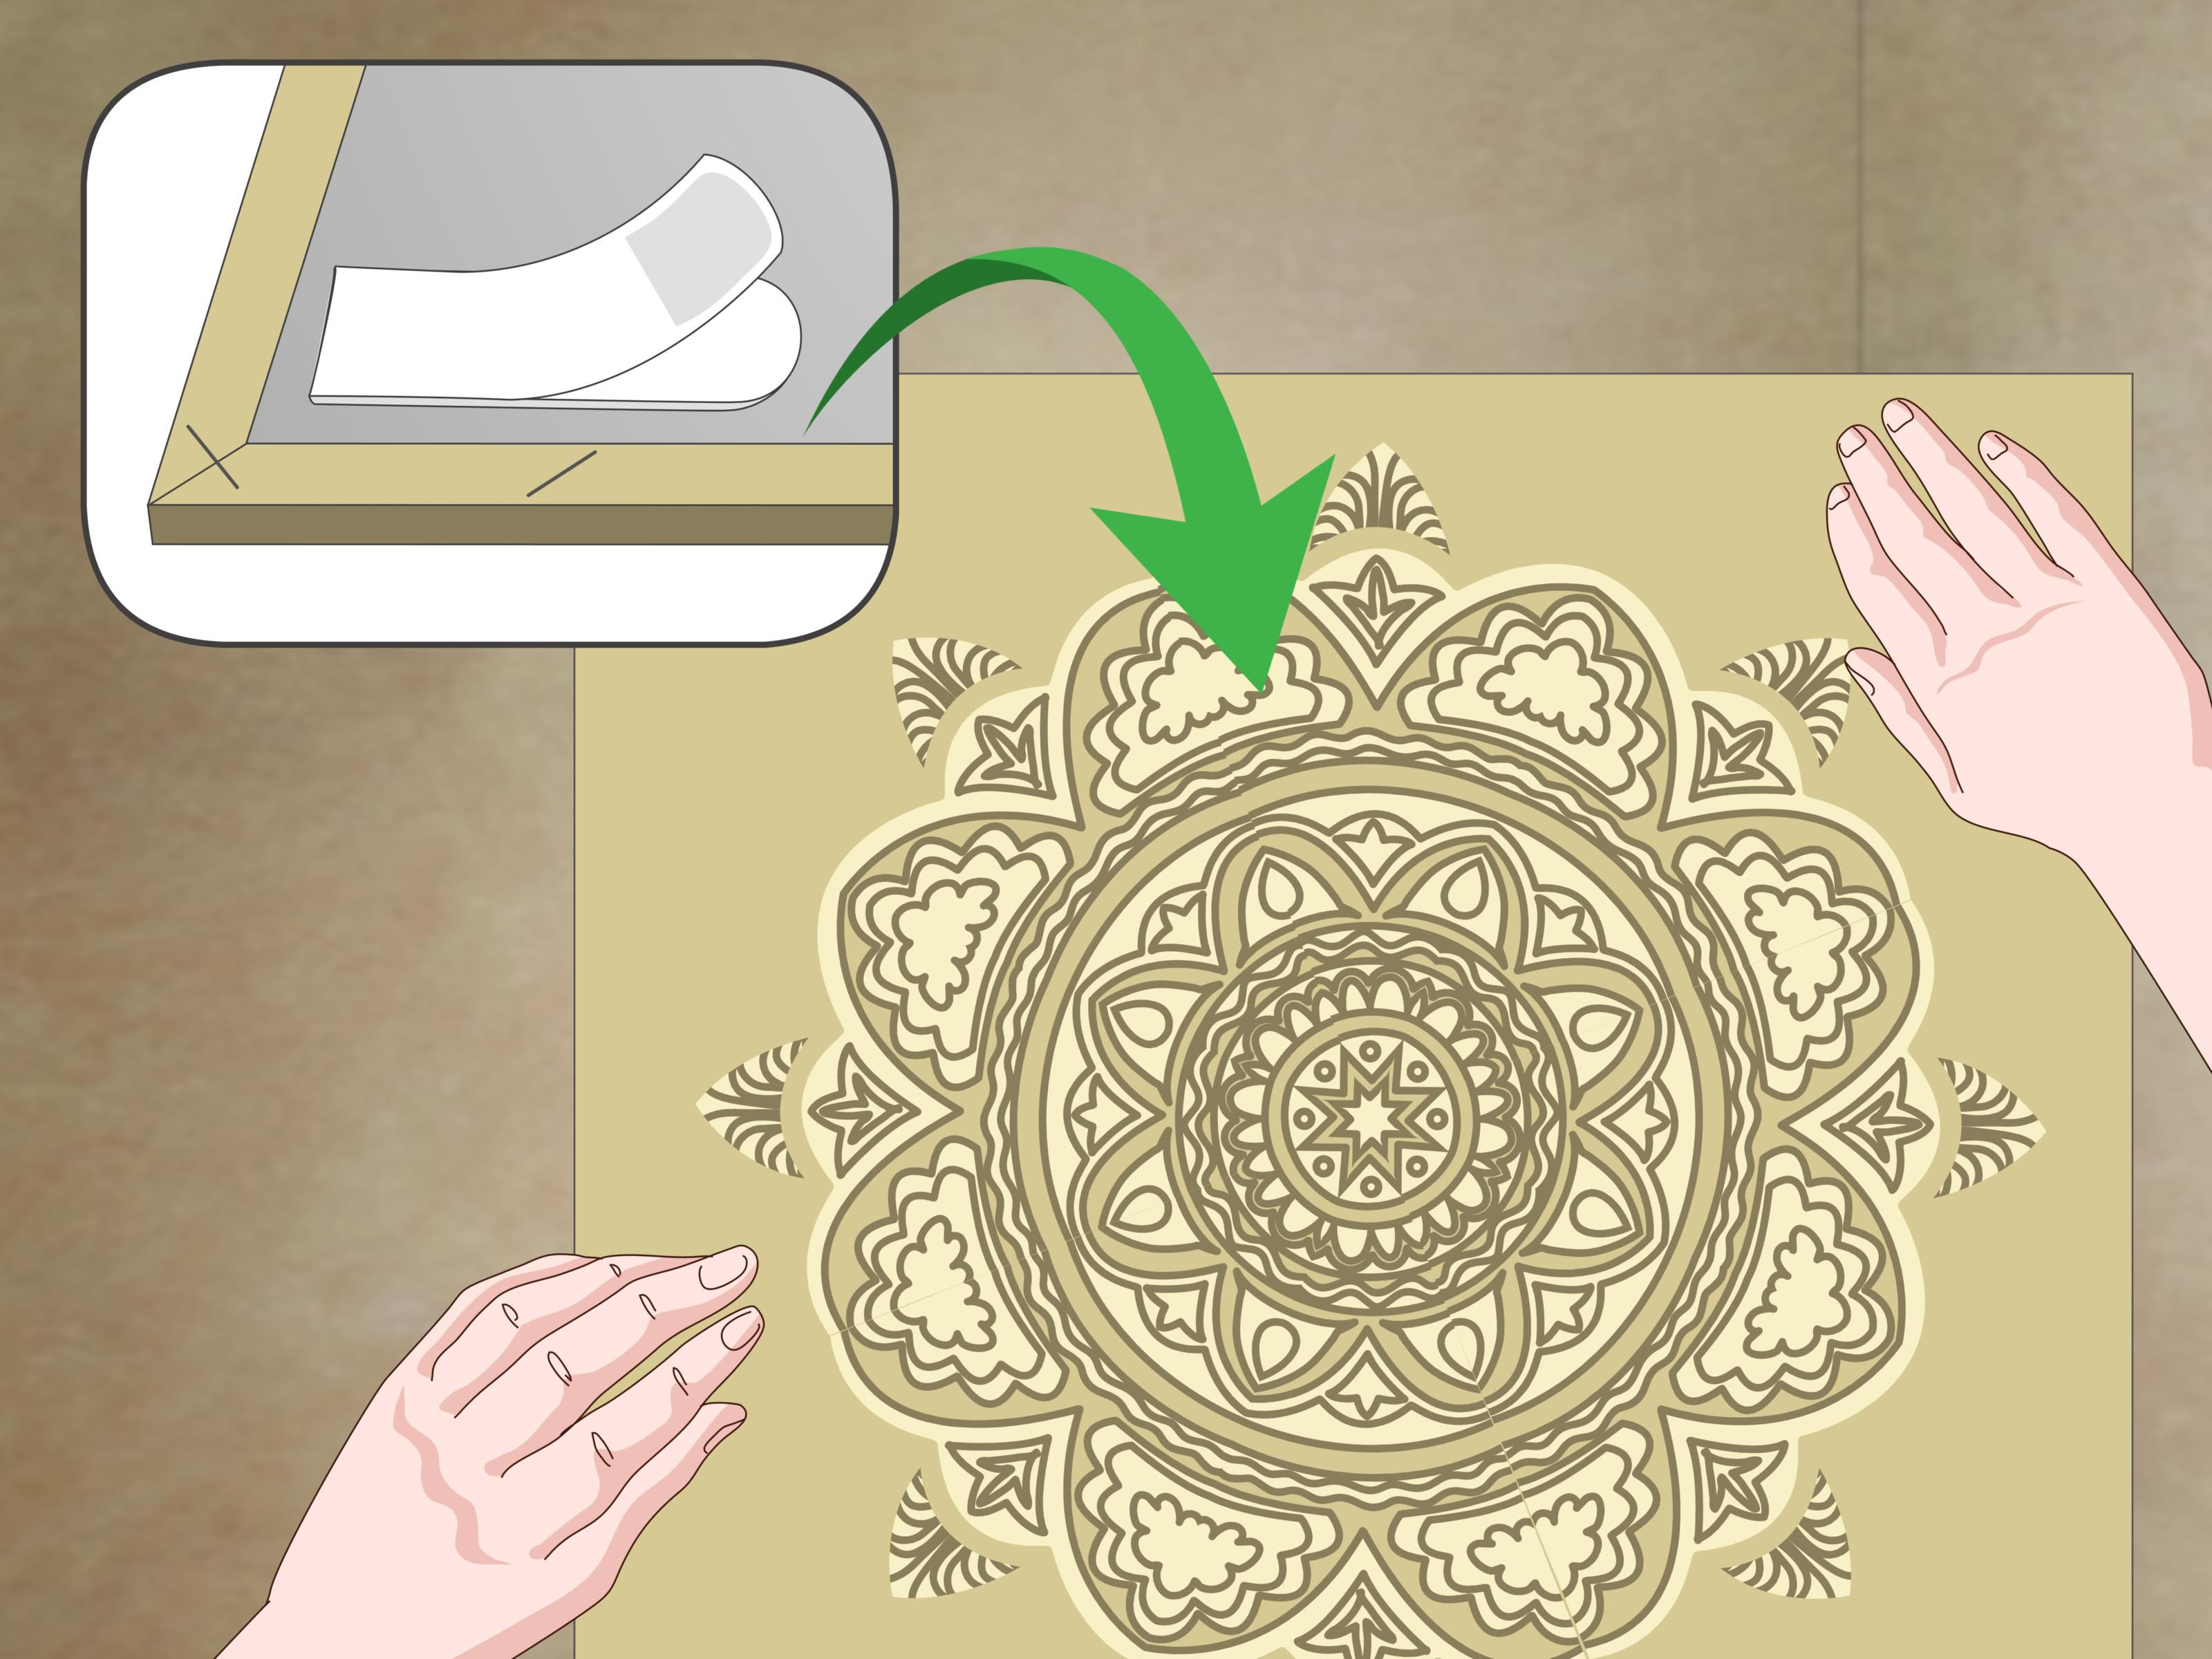 How To Hang A Tapestry With Command Strips Dorm Tapestry Hanging Tapestry Command Strips